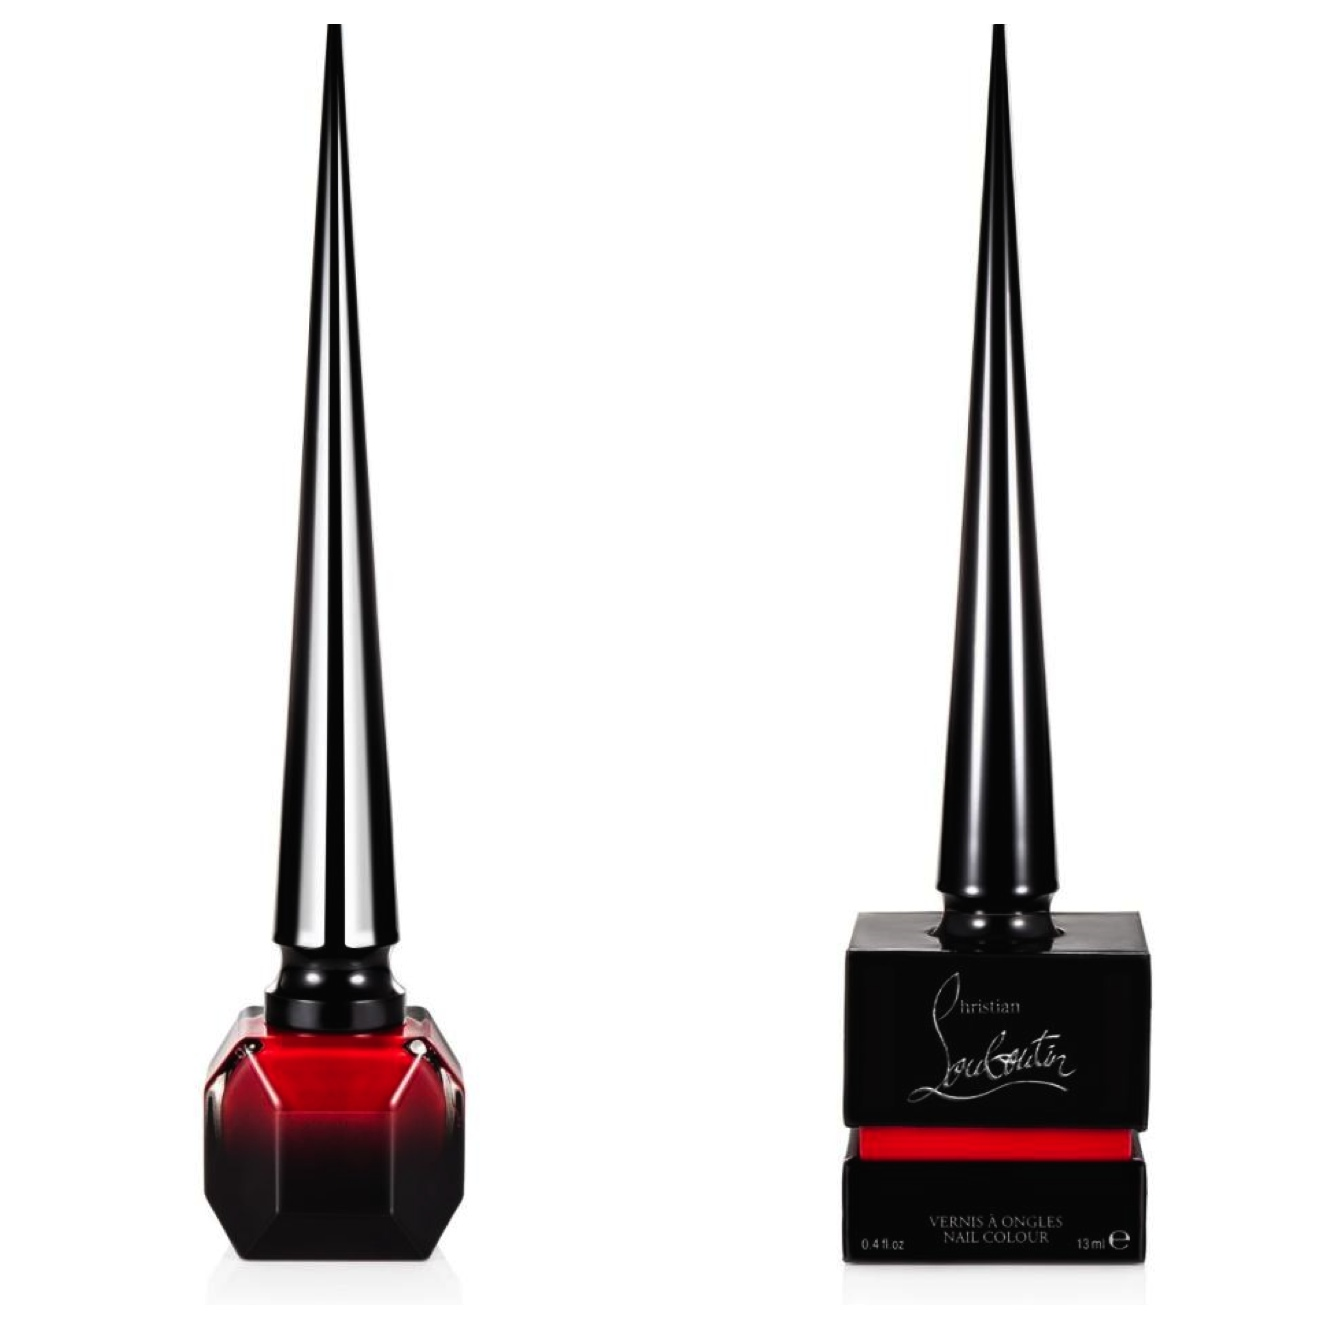 843ed86bcd7 Christian Louboutin nail polish will be available soon at Selfridges and Harvey  Nichols! I know you have been waiting for this for a very long time.